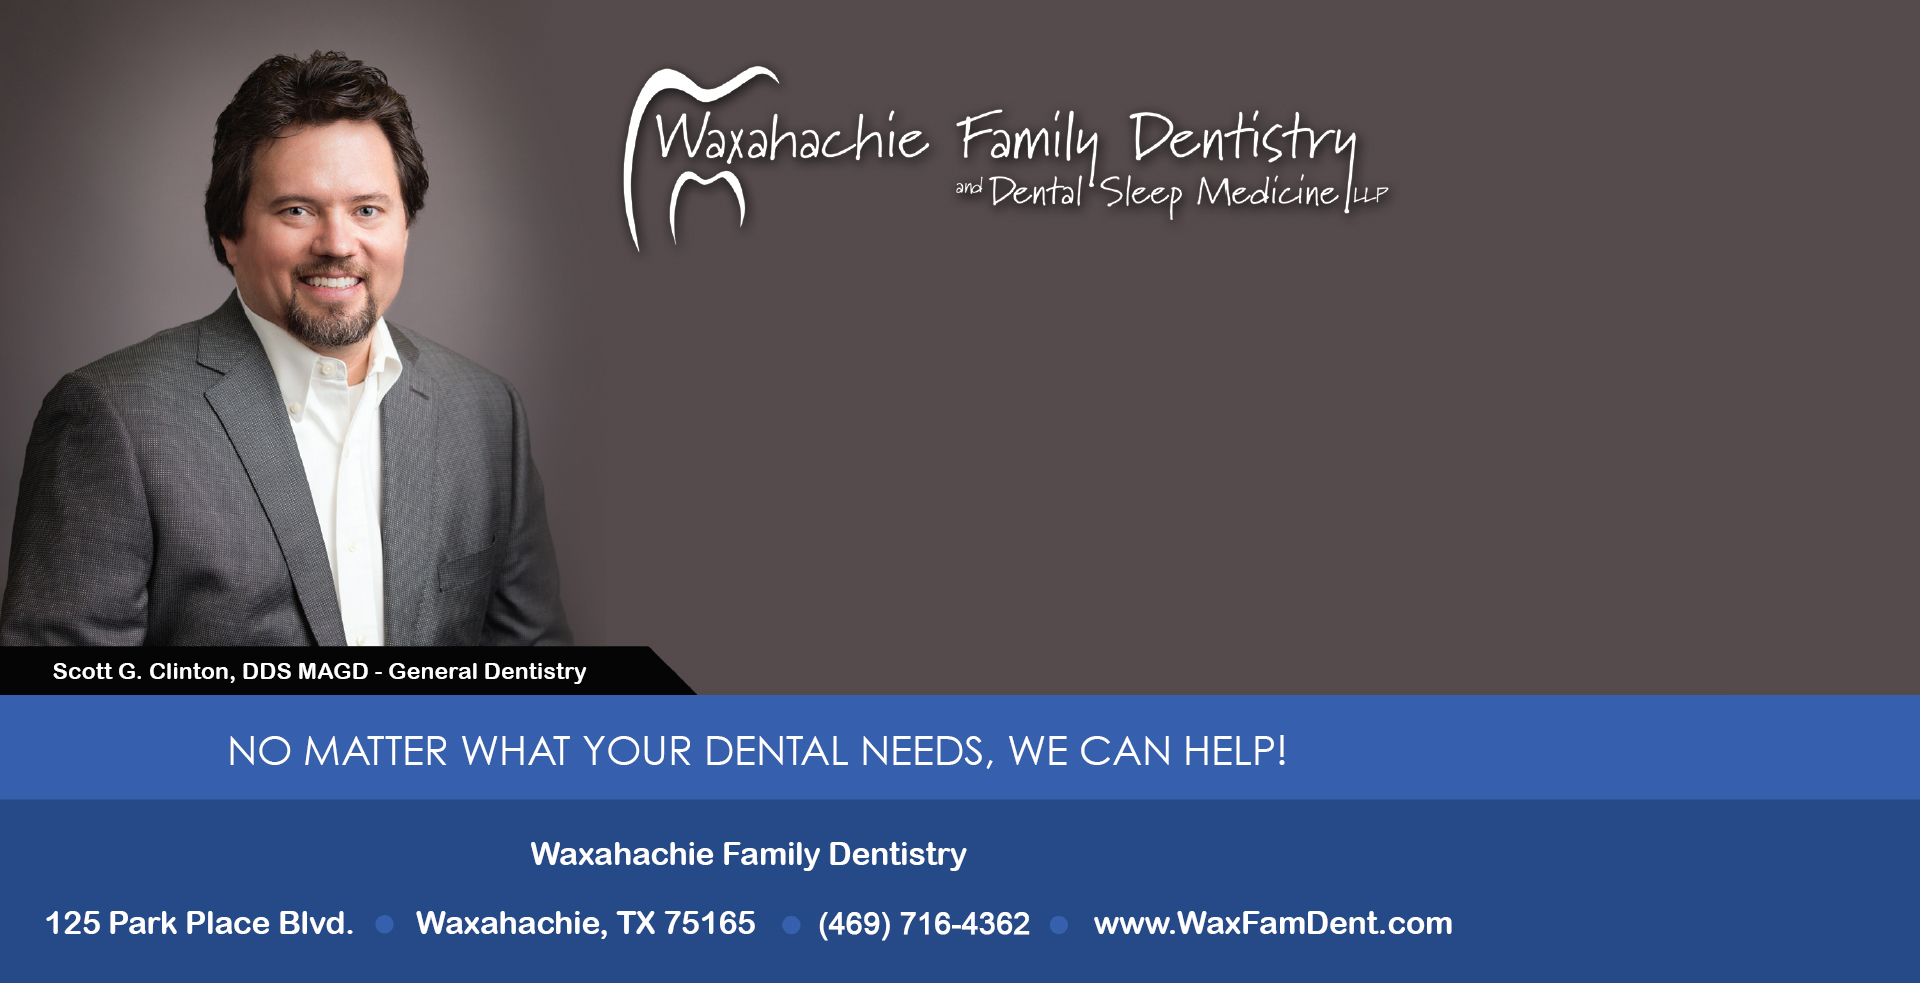 ad for dental sleep medicine at Waxahachie Family Dentistry with photo of Dr. Scott Clinton